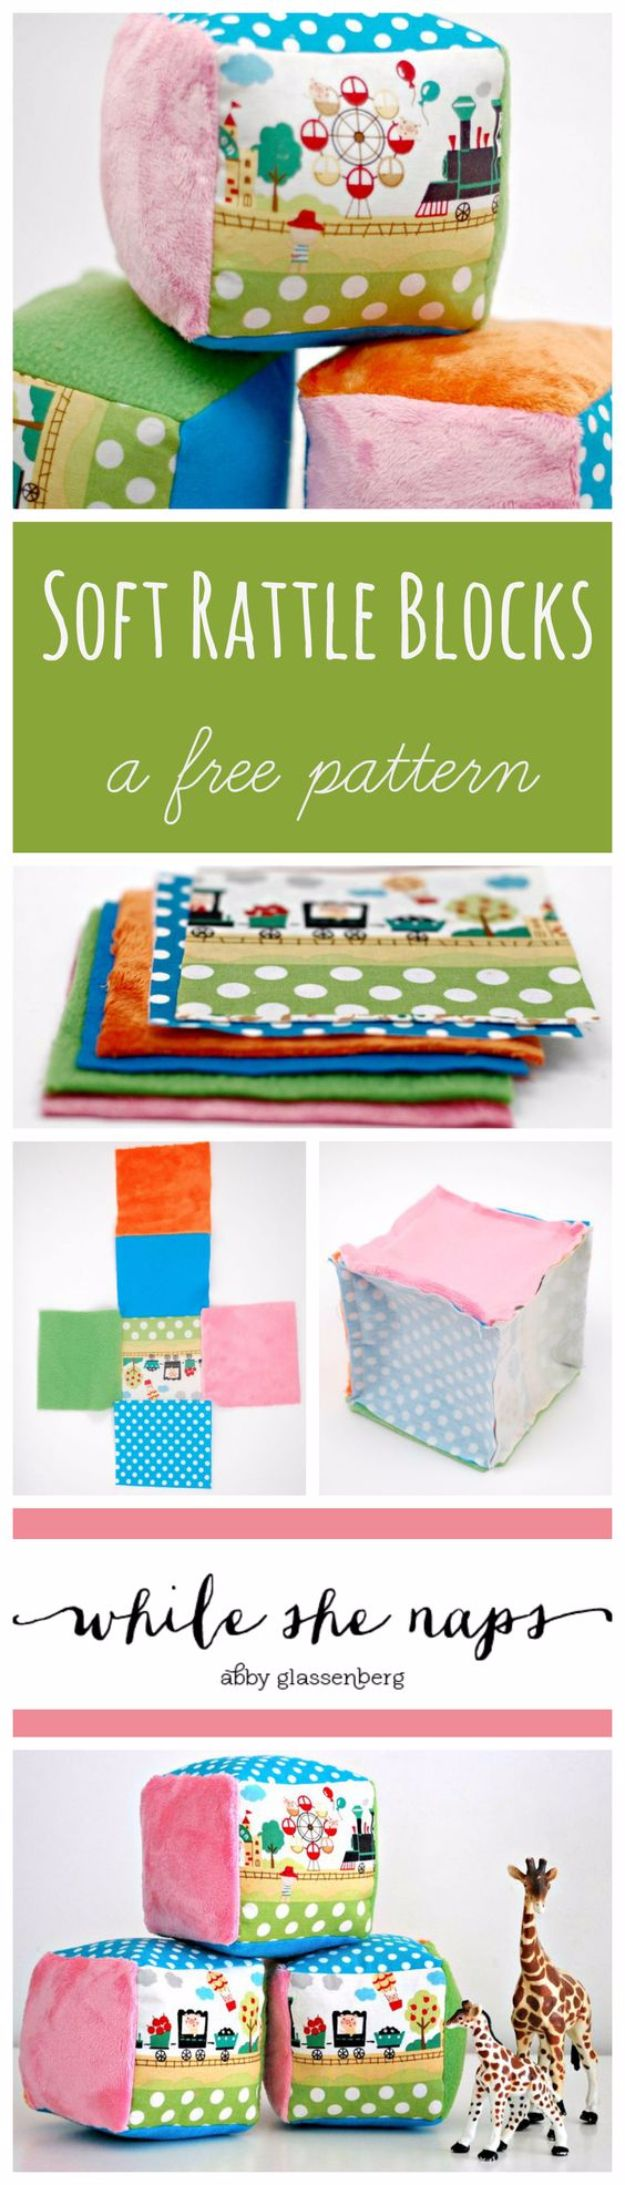 DIY Gifts for Babies - Soft Rattle Blocks - Best DIY Gift Ideas for Baby Boys and Girls - Creative Projects to Sew, Make and Sell, Gift Baskets, Diaper Cakes and Presents for Baby Showers and New Parents. Cool Christmas and Birthday Ideas http://diyjoy.com/diy-gifts-for-baby